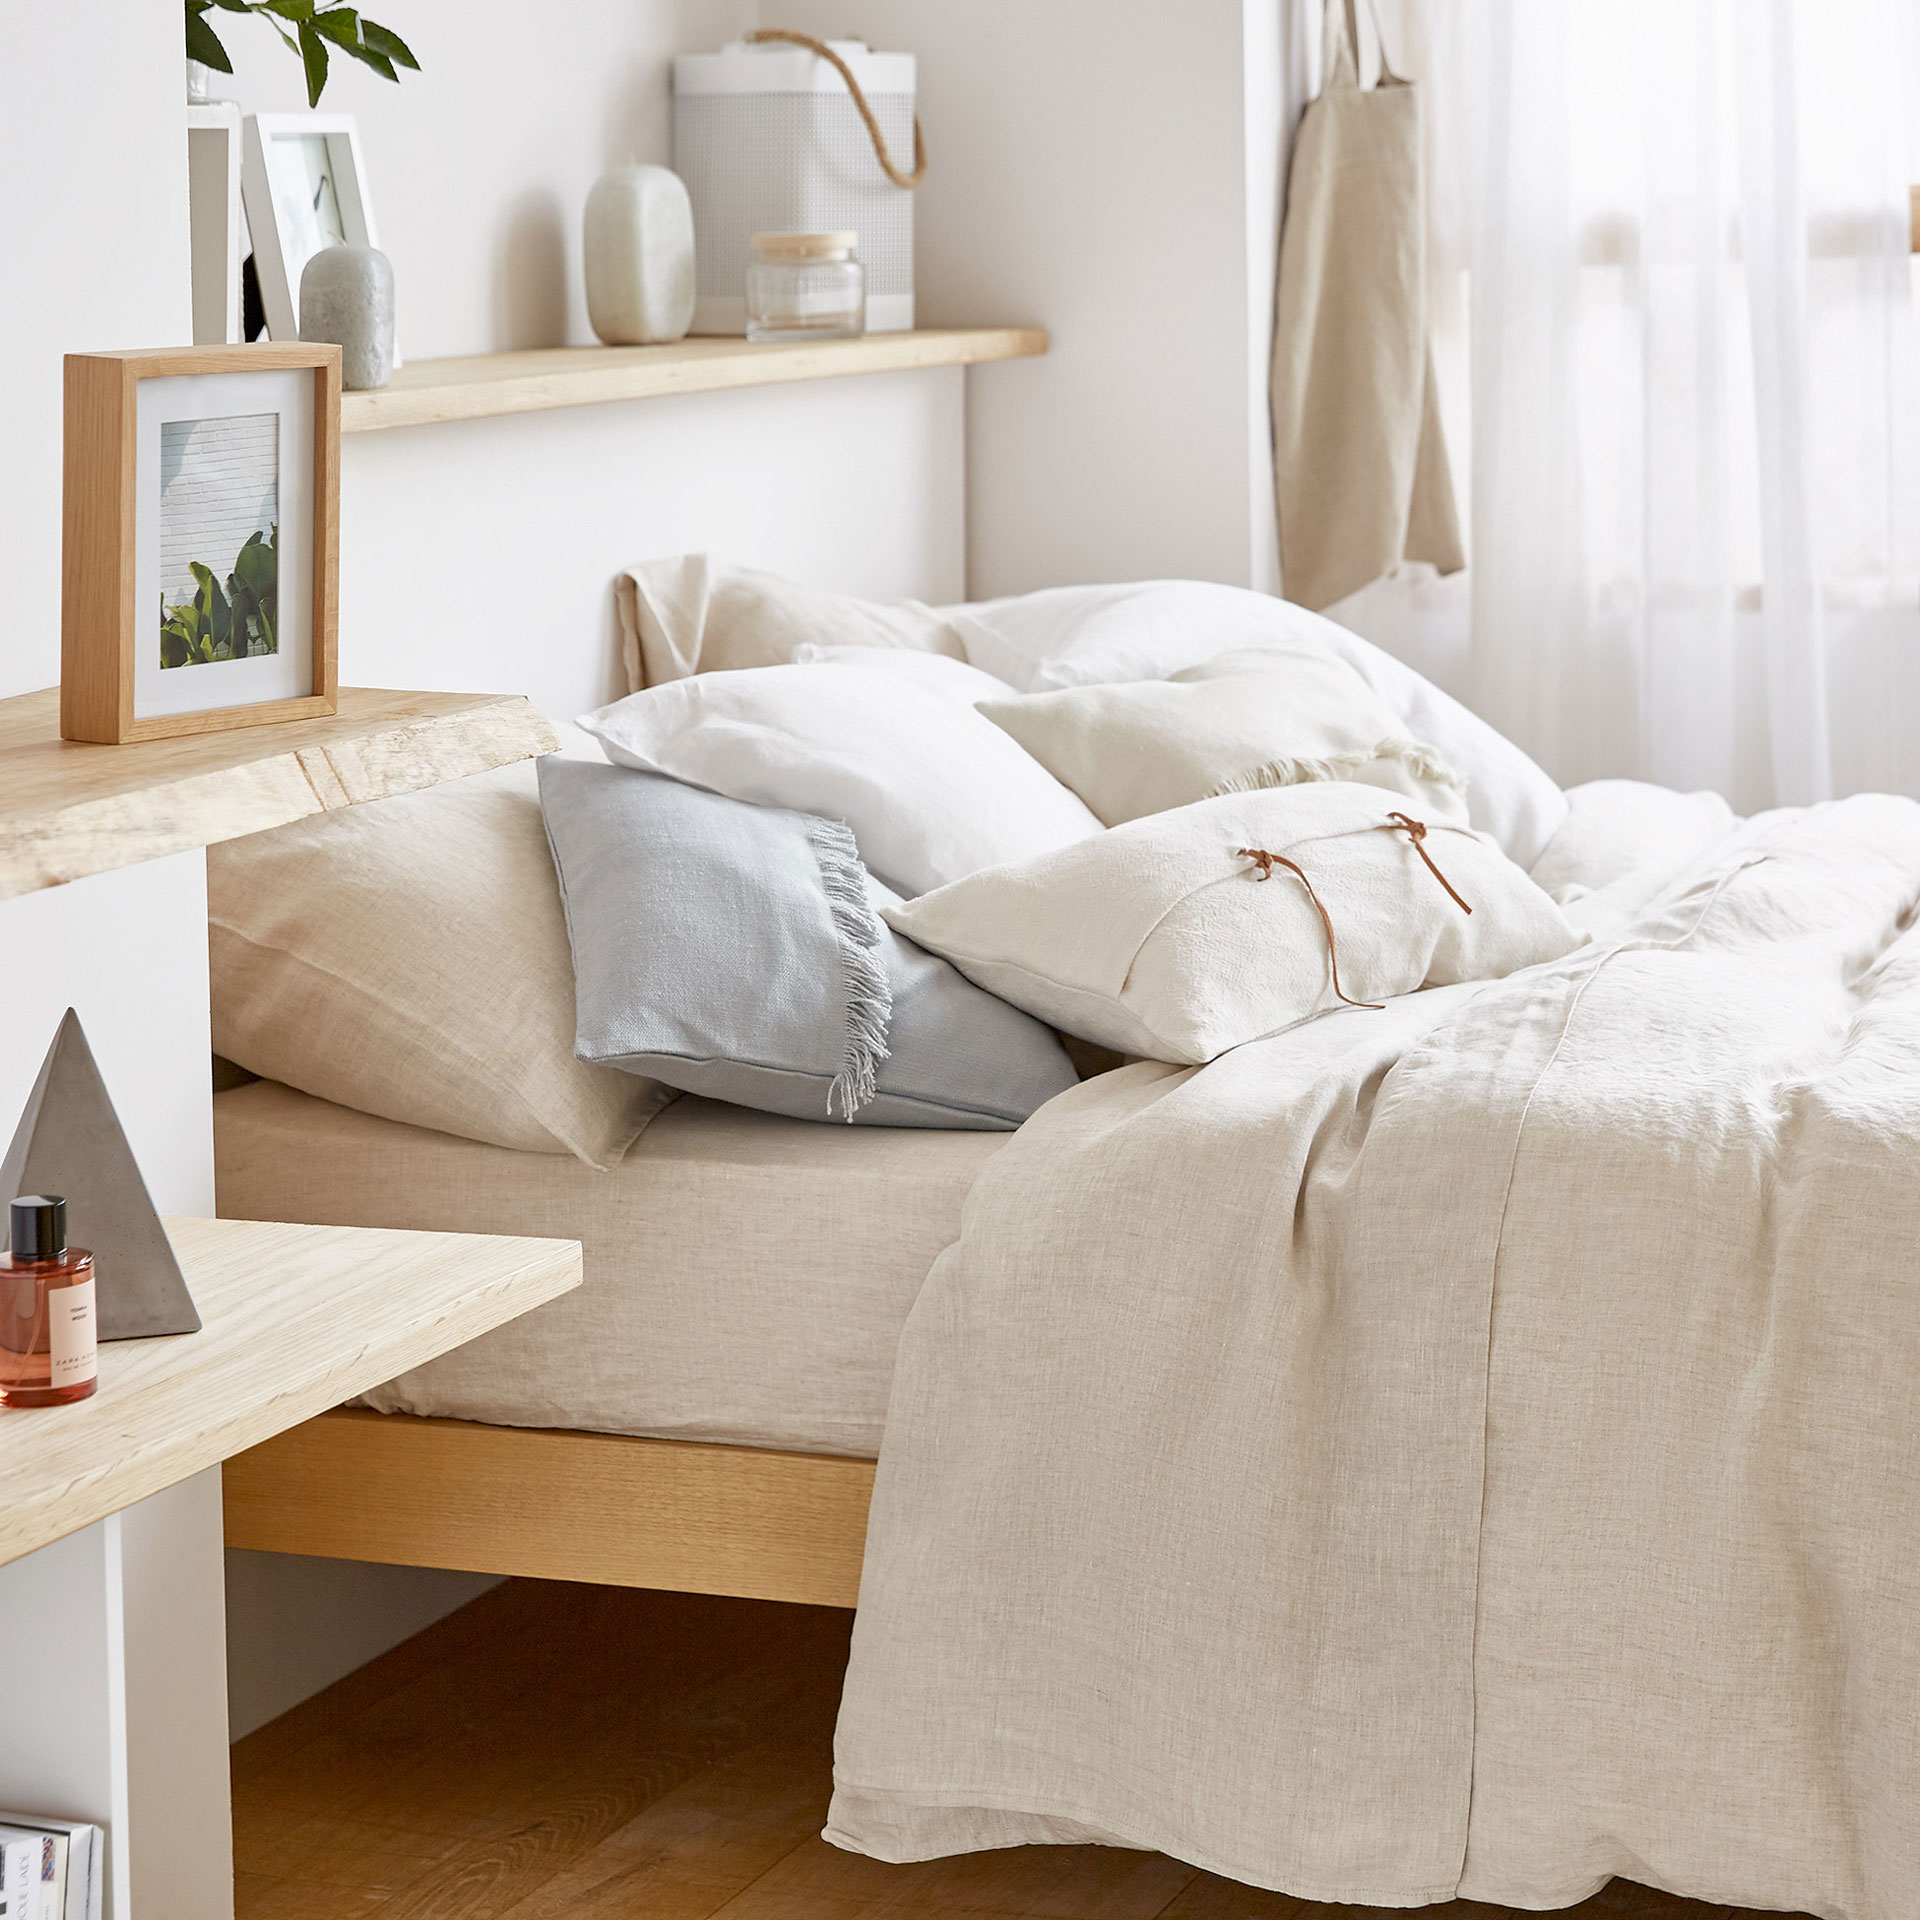 Natural Colour Faded Linen Bed